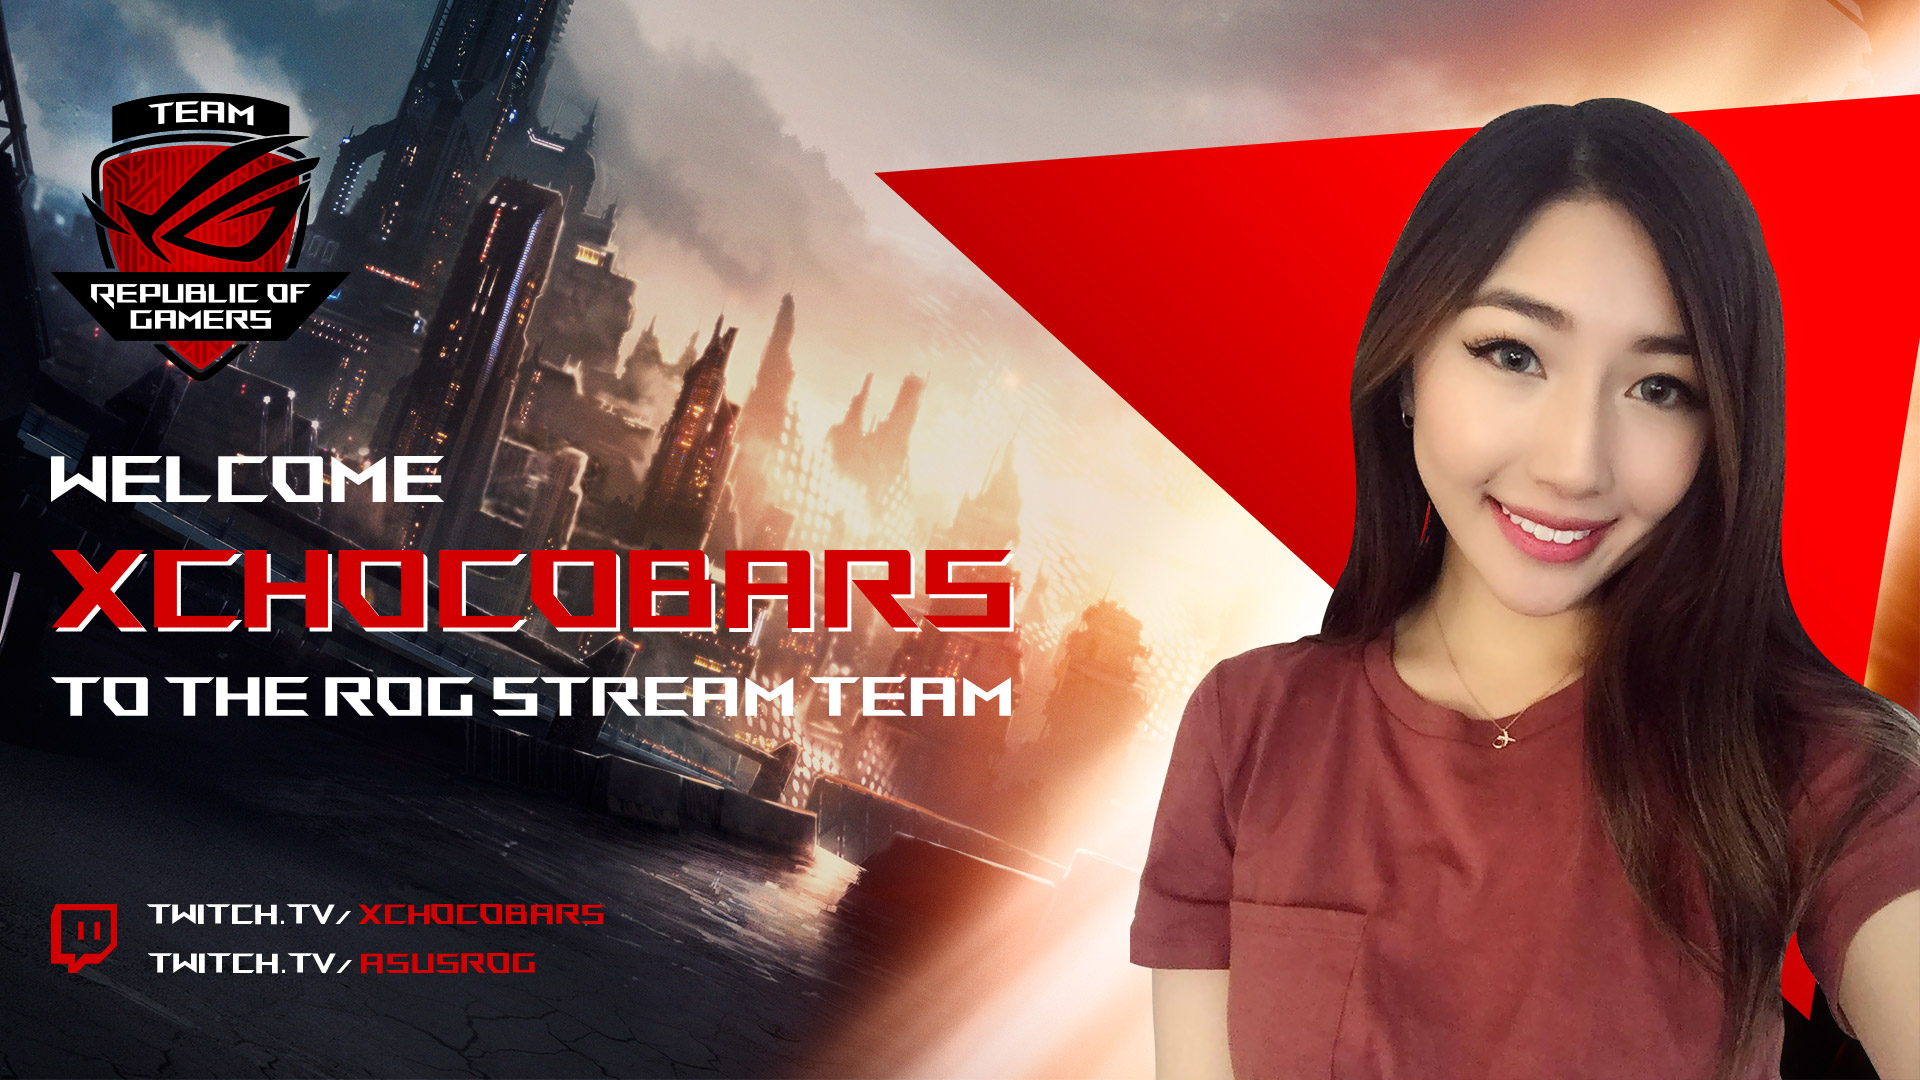 ASUS-Twitch-Welcome_ROG_Team-xChocobars